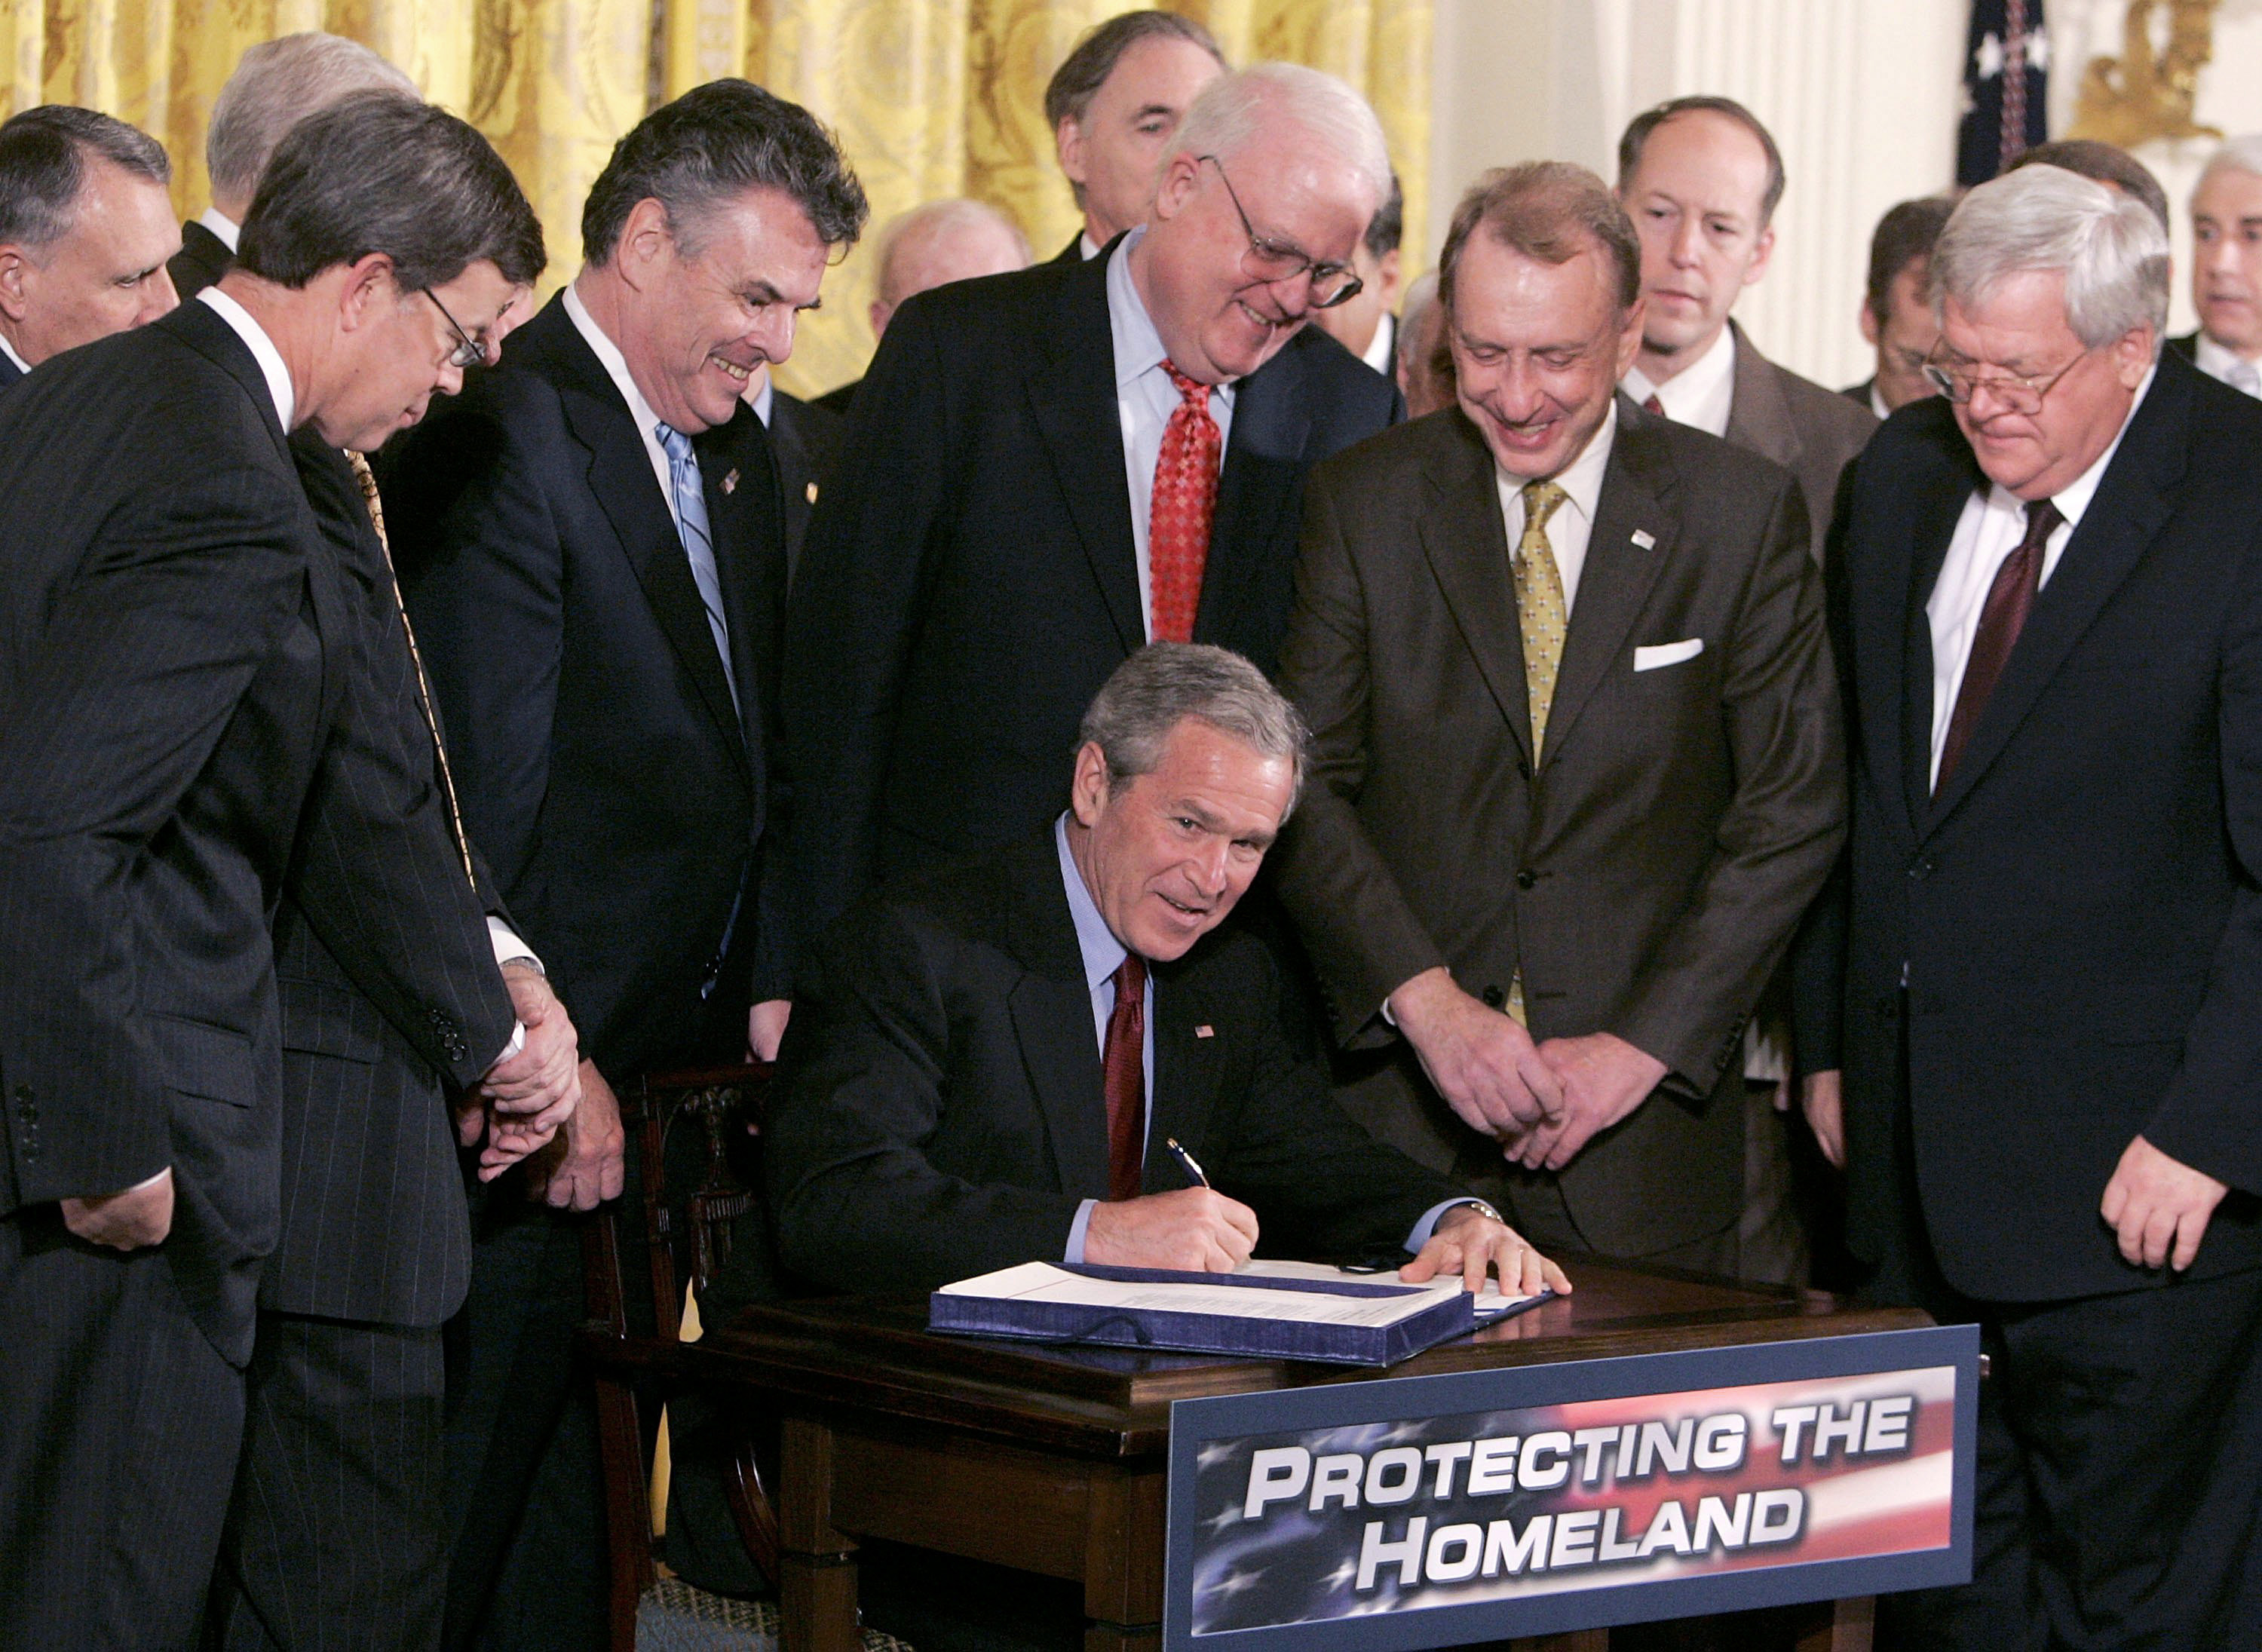 WASHINGTON - MARCH 09: Surrounded by members of Congress and Cabinet members U.S. President George W. Bush signs the H.R. 3199, USA PATRIOT and Terrorism Prevention Reauthorization Act of 2005 in the East Room at the White House March 8, 2006 in Washington DC. The reauthorization of the Patriot Act had come under criticism from some in Congress for the potential to infringe of civil liberties but was pushed by the Bush administration as essential for fighting terrorism. (Photo by Mark Wilson/Getty Images)